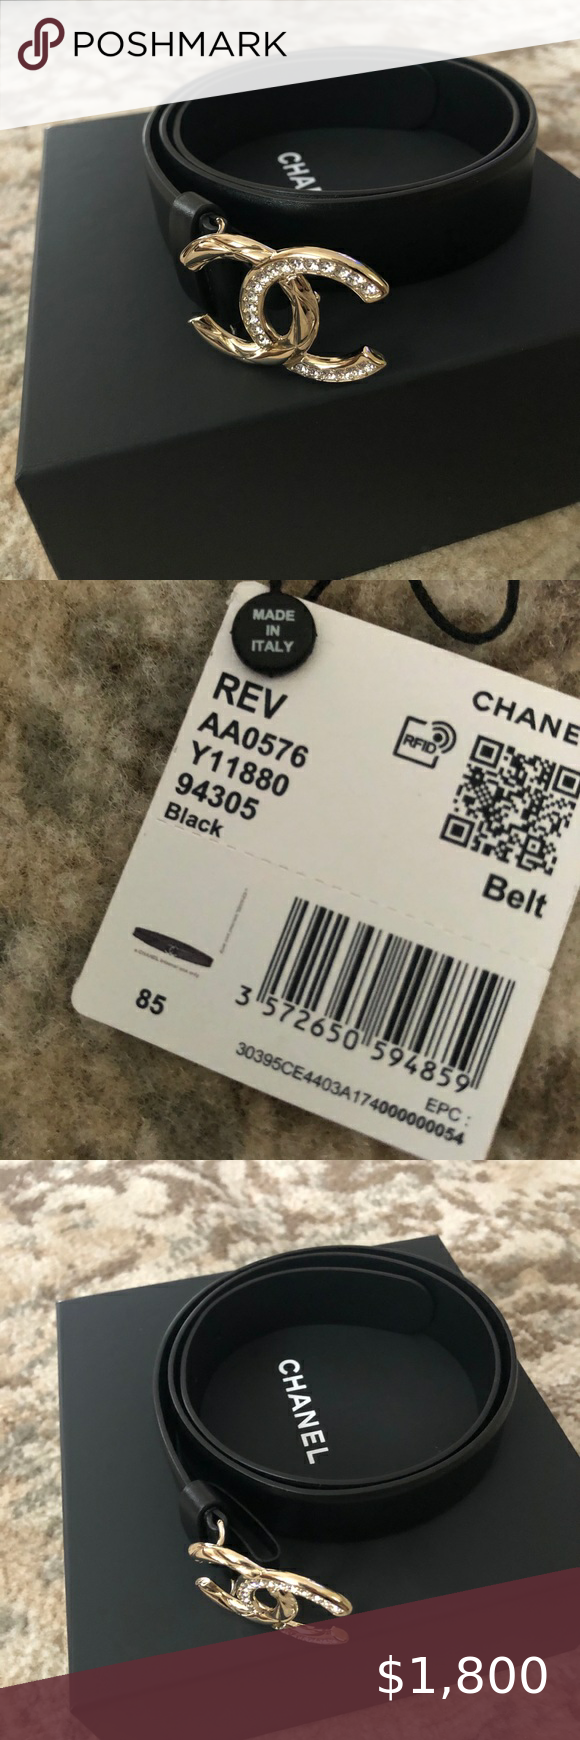 Cc Logo Chanel Authentic Belt In 2021 Chanel Store Neiman Marcus Chanel Chanel Accessories